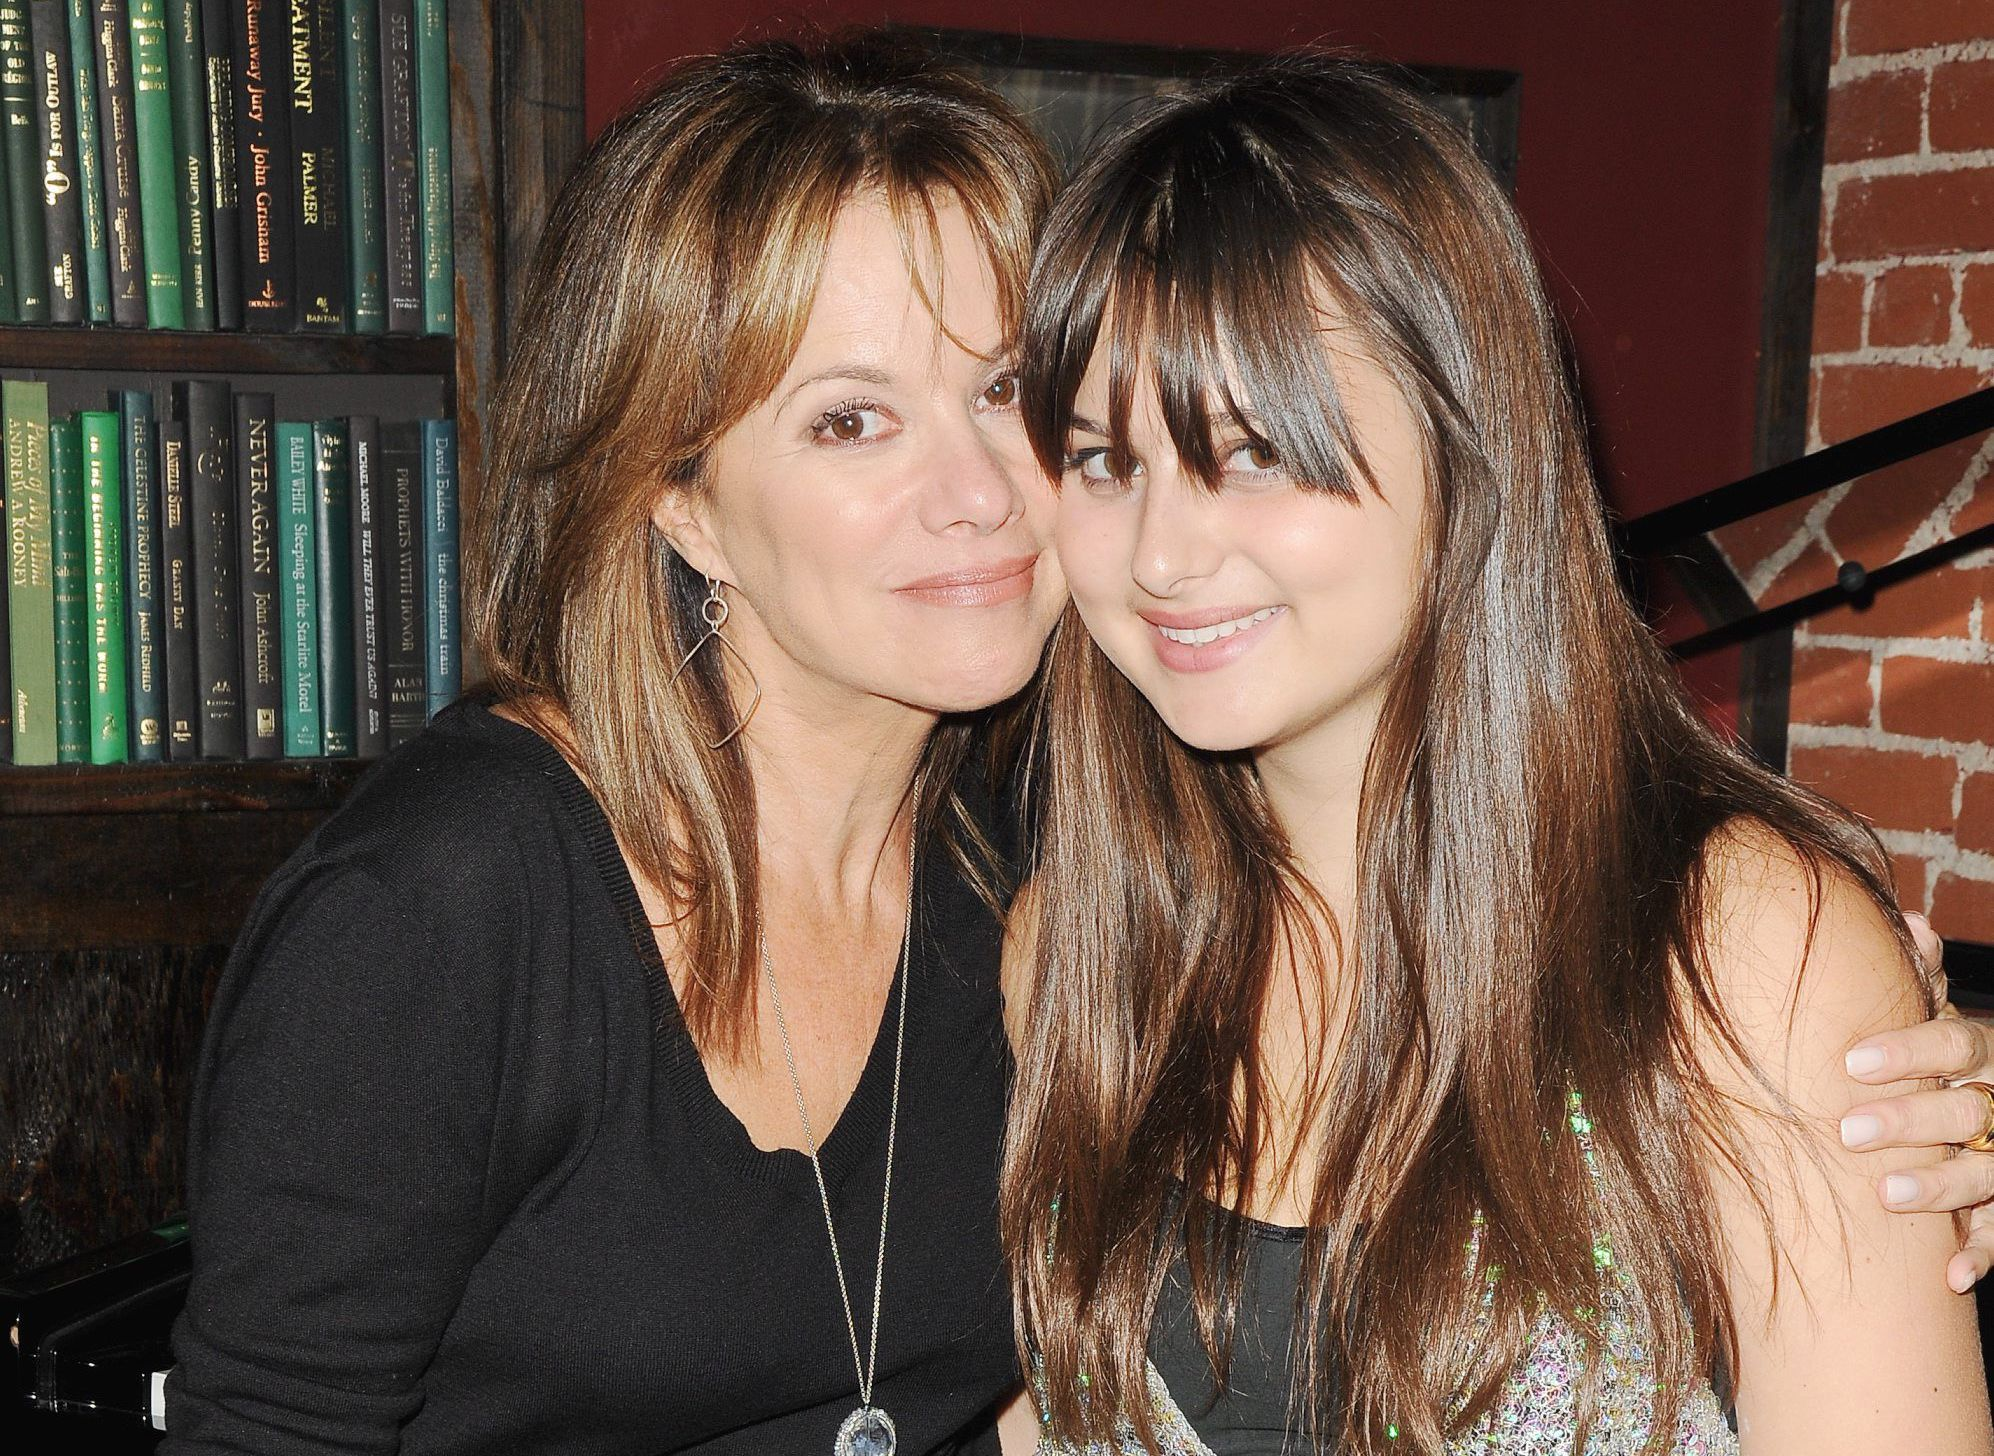 Nancy Grahn, Kate GrahnNancy Lee Grahn Fan Event During the General Hospital Fan Club WeekendThe Federal BarNorth Hollywood, CA7/25/13 © Jill Johnson/jpistudios.com310-657-9661